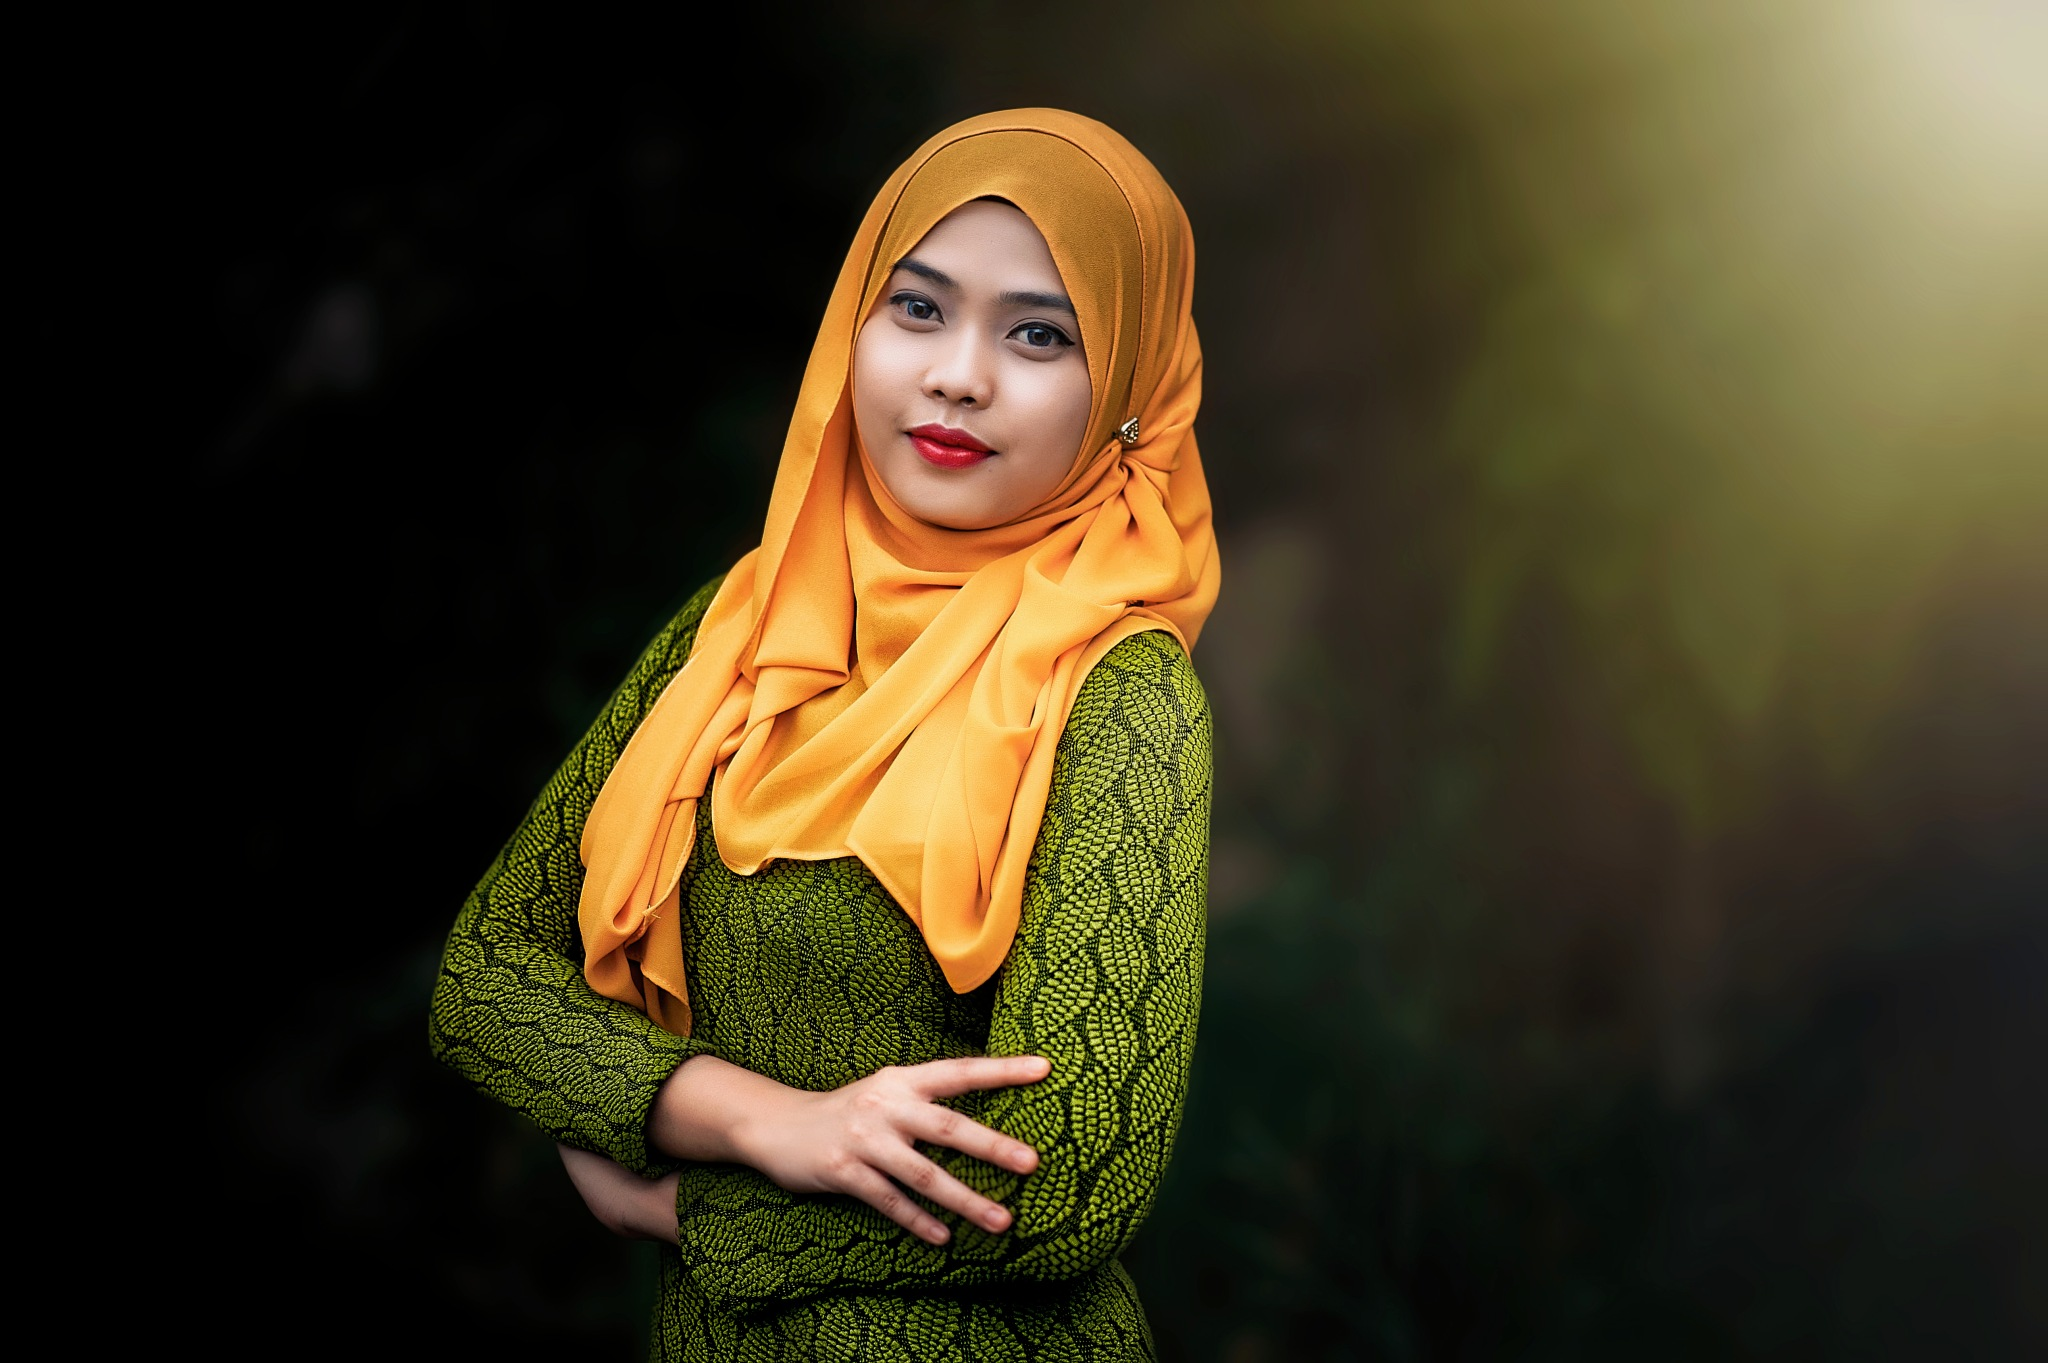 Awin pose by MSR Photography